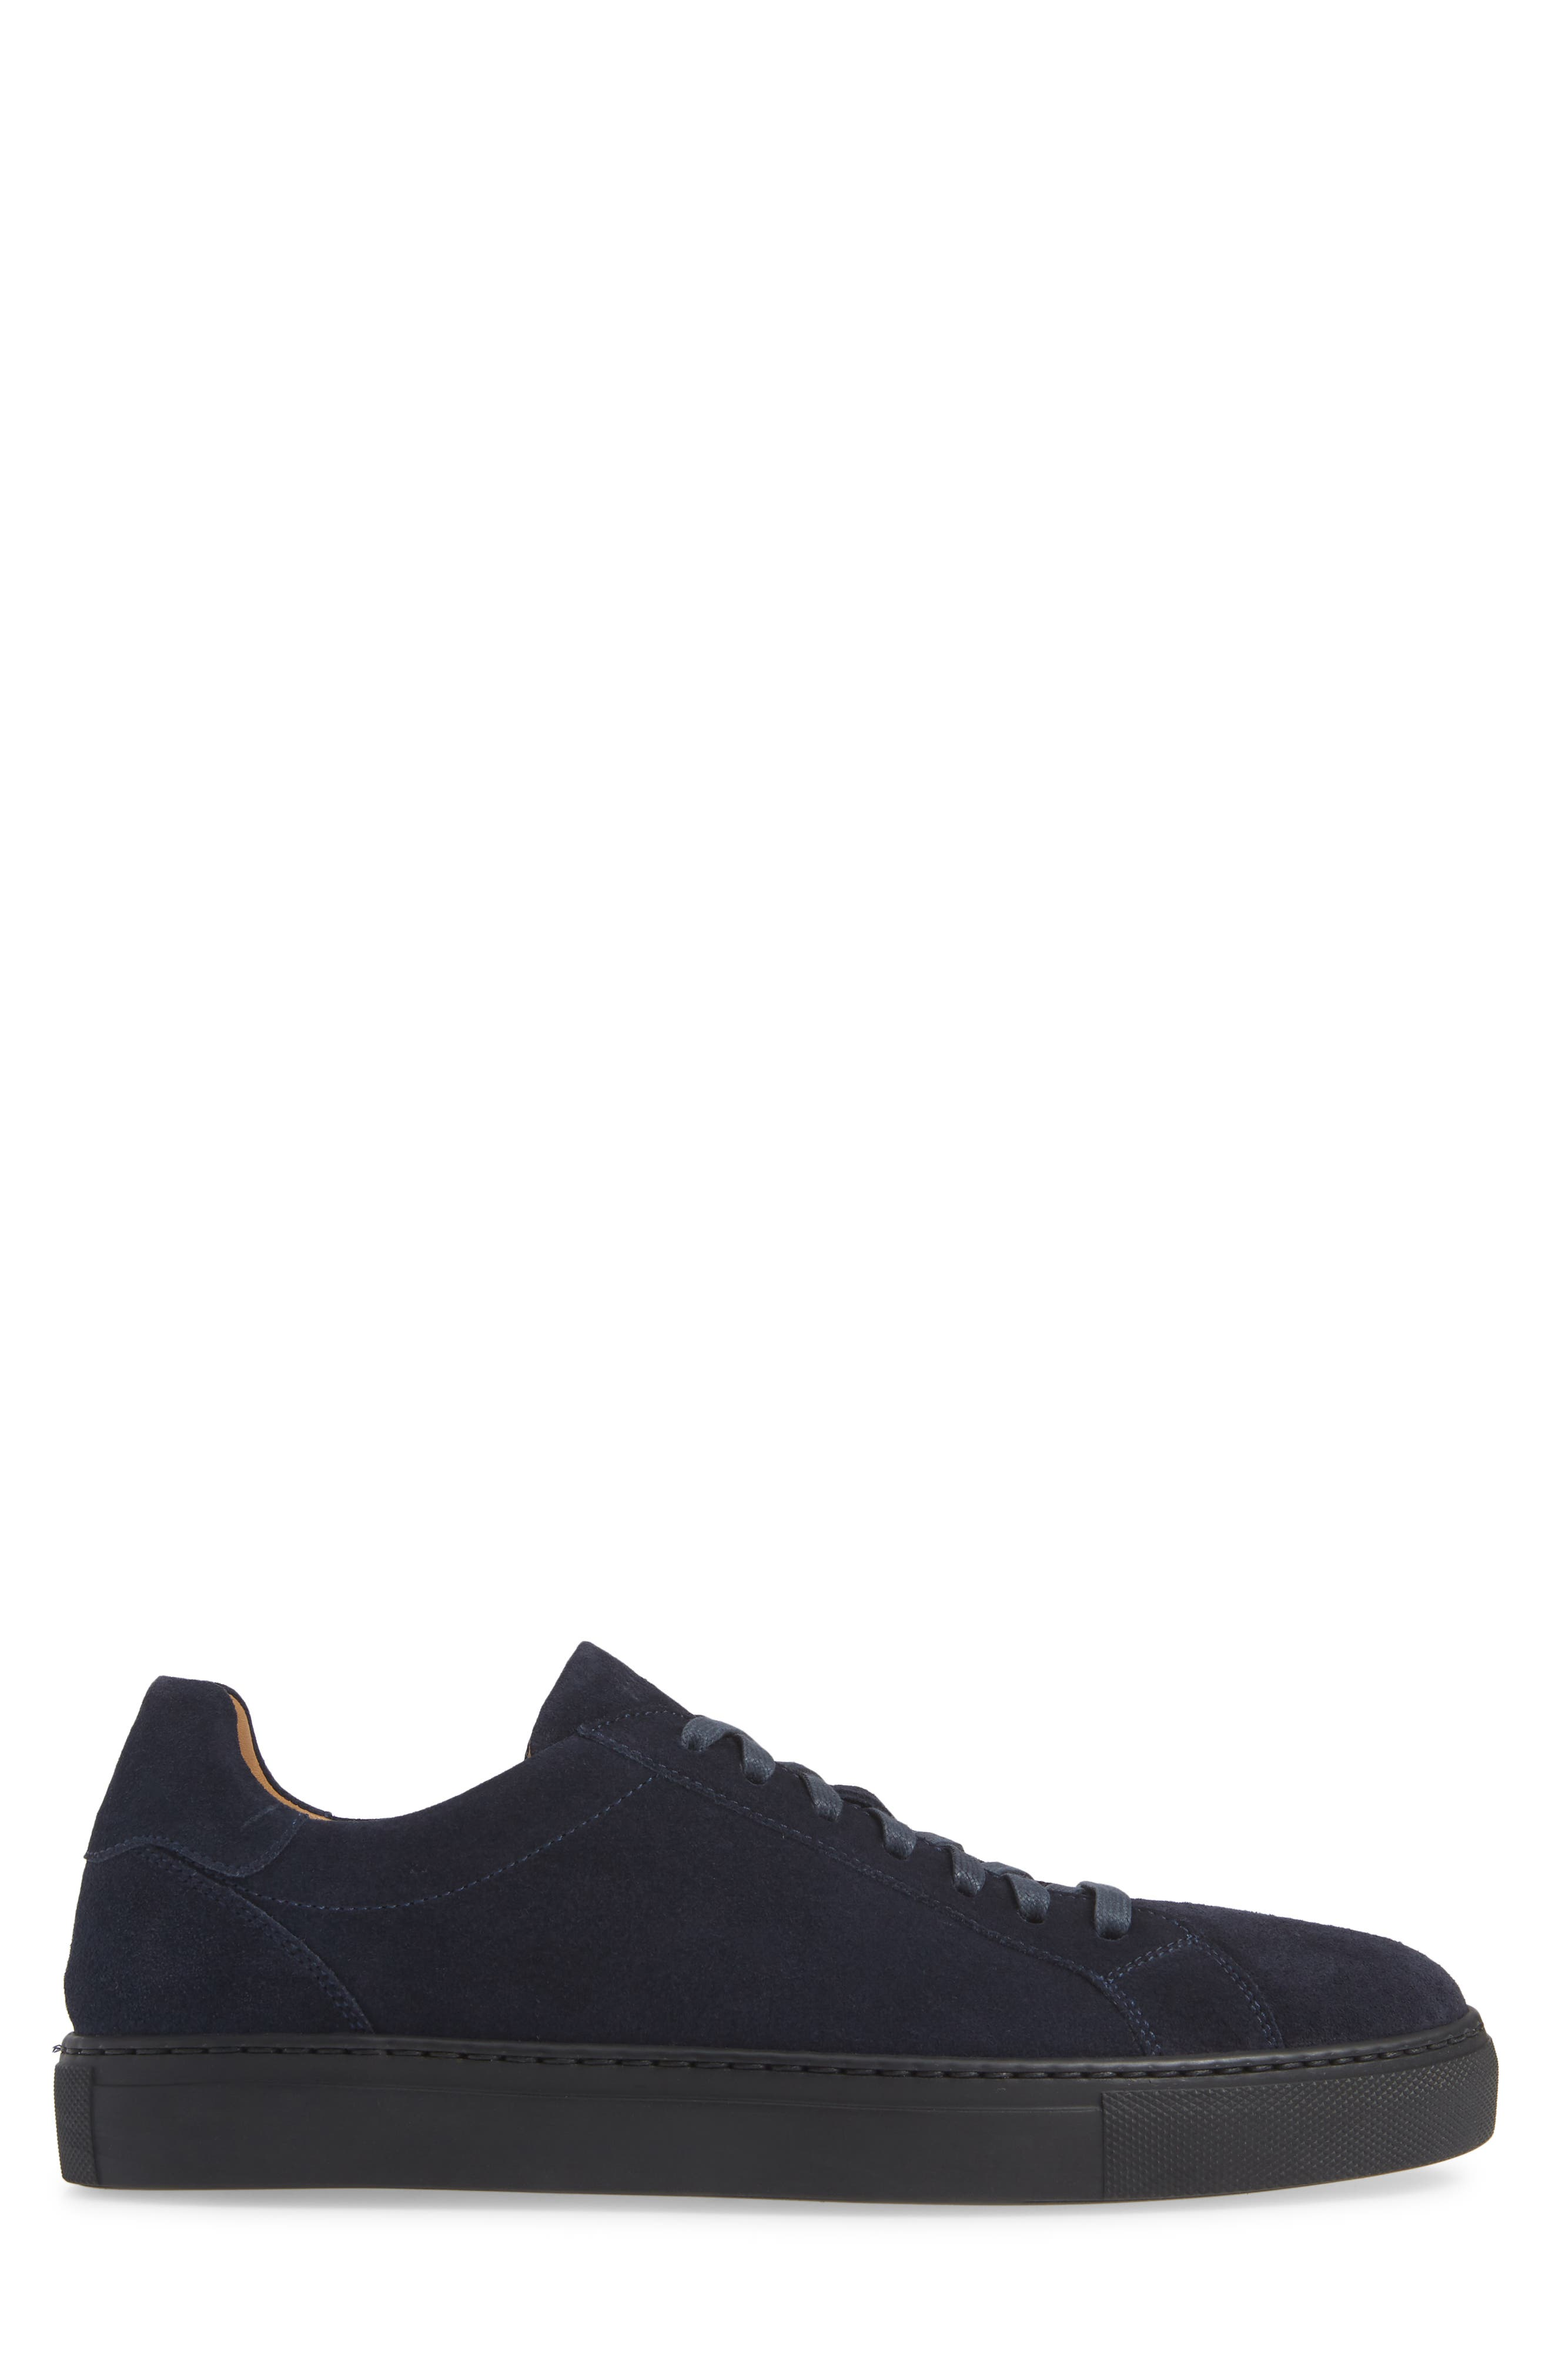 Fede Sneaker,                             Alternate thumbnail 3, color,                             NAVY SUEDE/ LEATHER